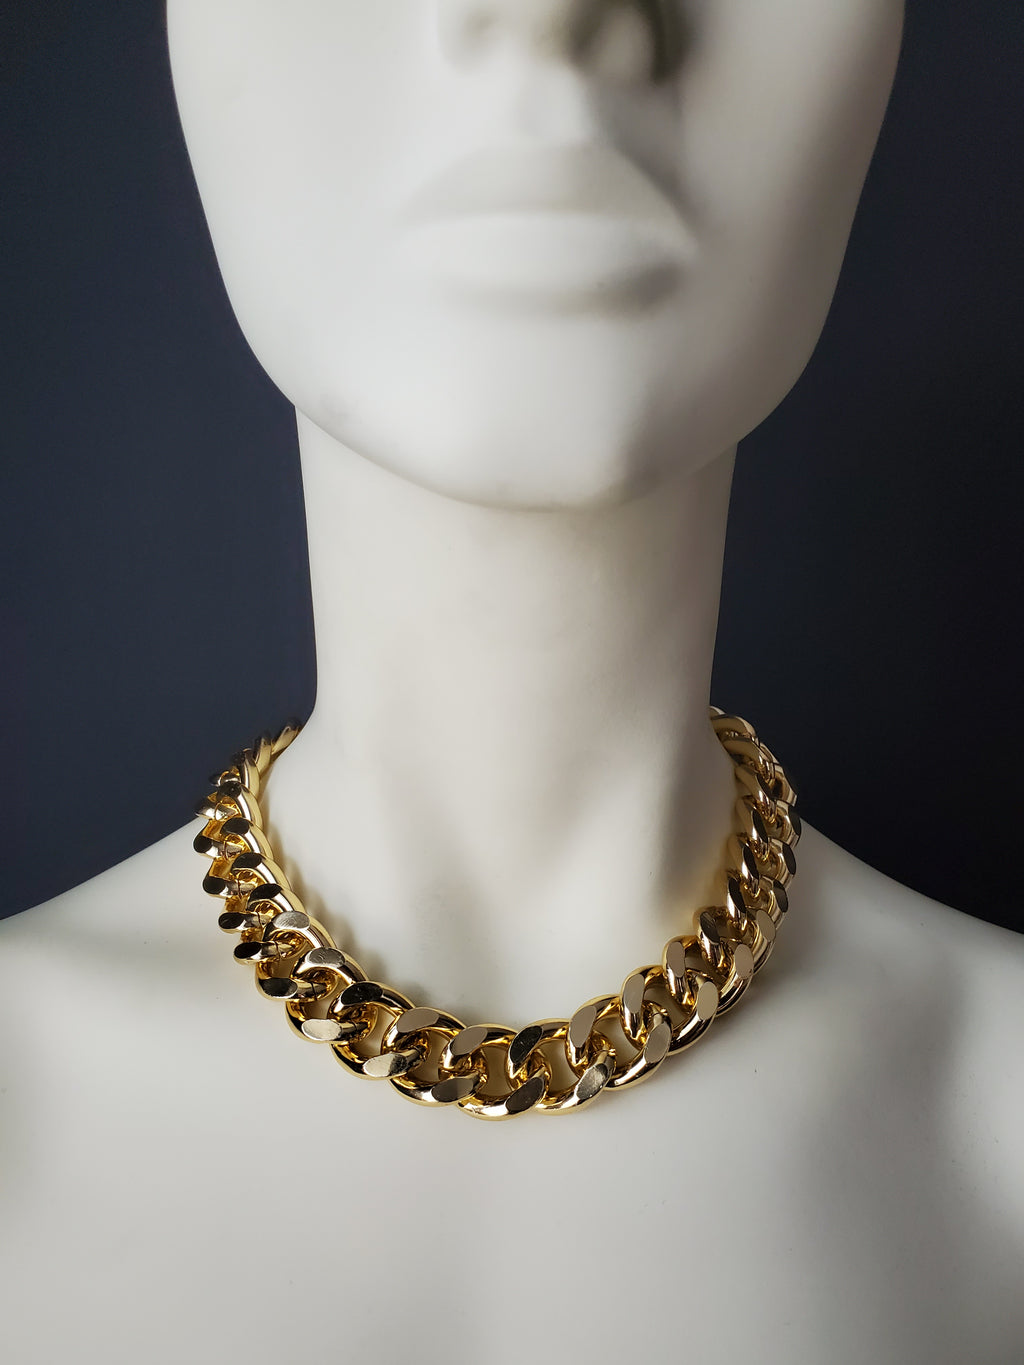 A must have for every Bad Girl! Our simple and sleek design, combined with our signature 18mm chain, makes this piece a timeless statement piece. The BADDIE CHOKER can be dressed up or down and looks great layered with other gold chain necklaces! -Gold color plating-Nickel-free chain link-Handmade in Cincinnati Every order is handmade direct from our production facility in Cincinnati, OH. Items are typically completed within 5-7 business days and then require additional shipping time to reach your location.